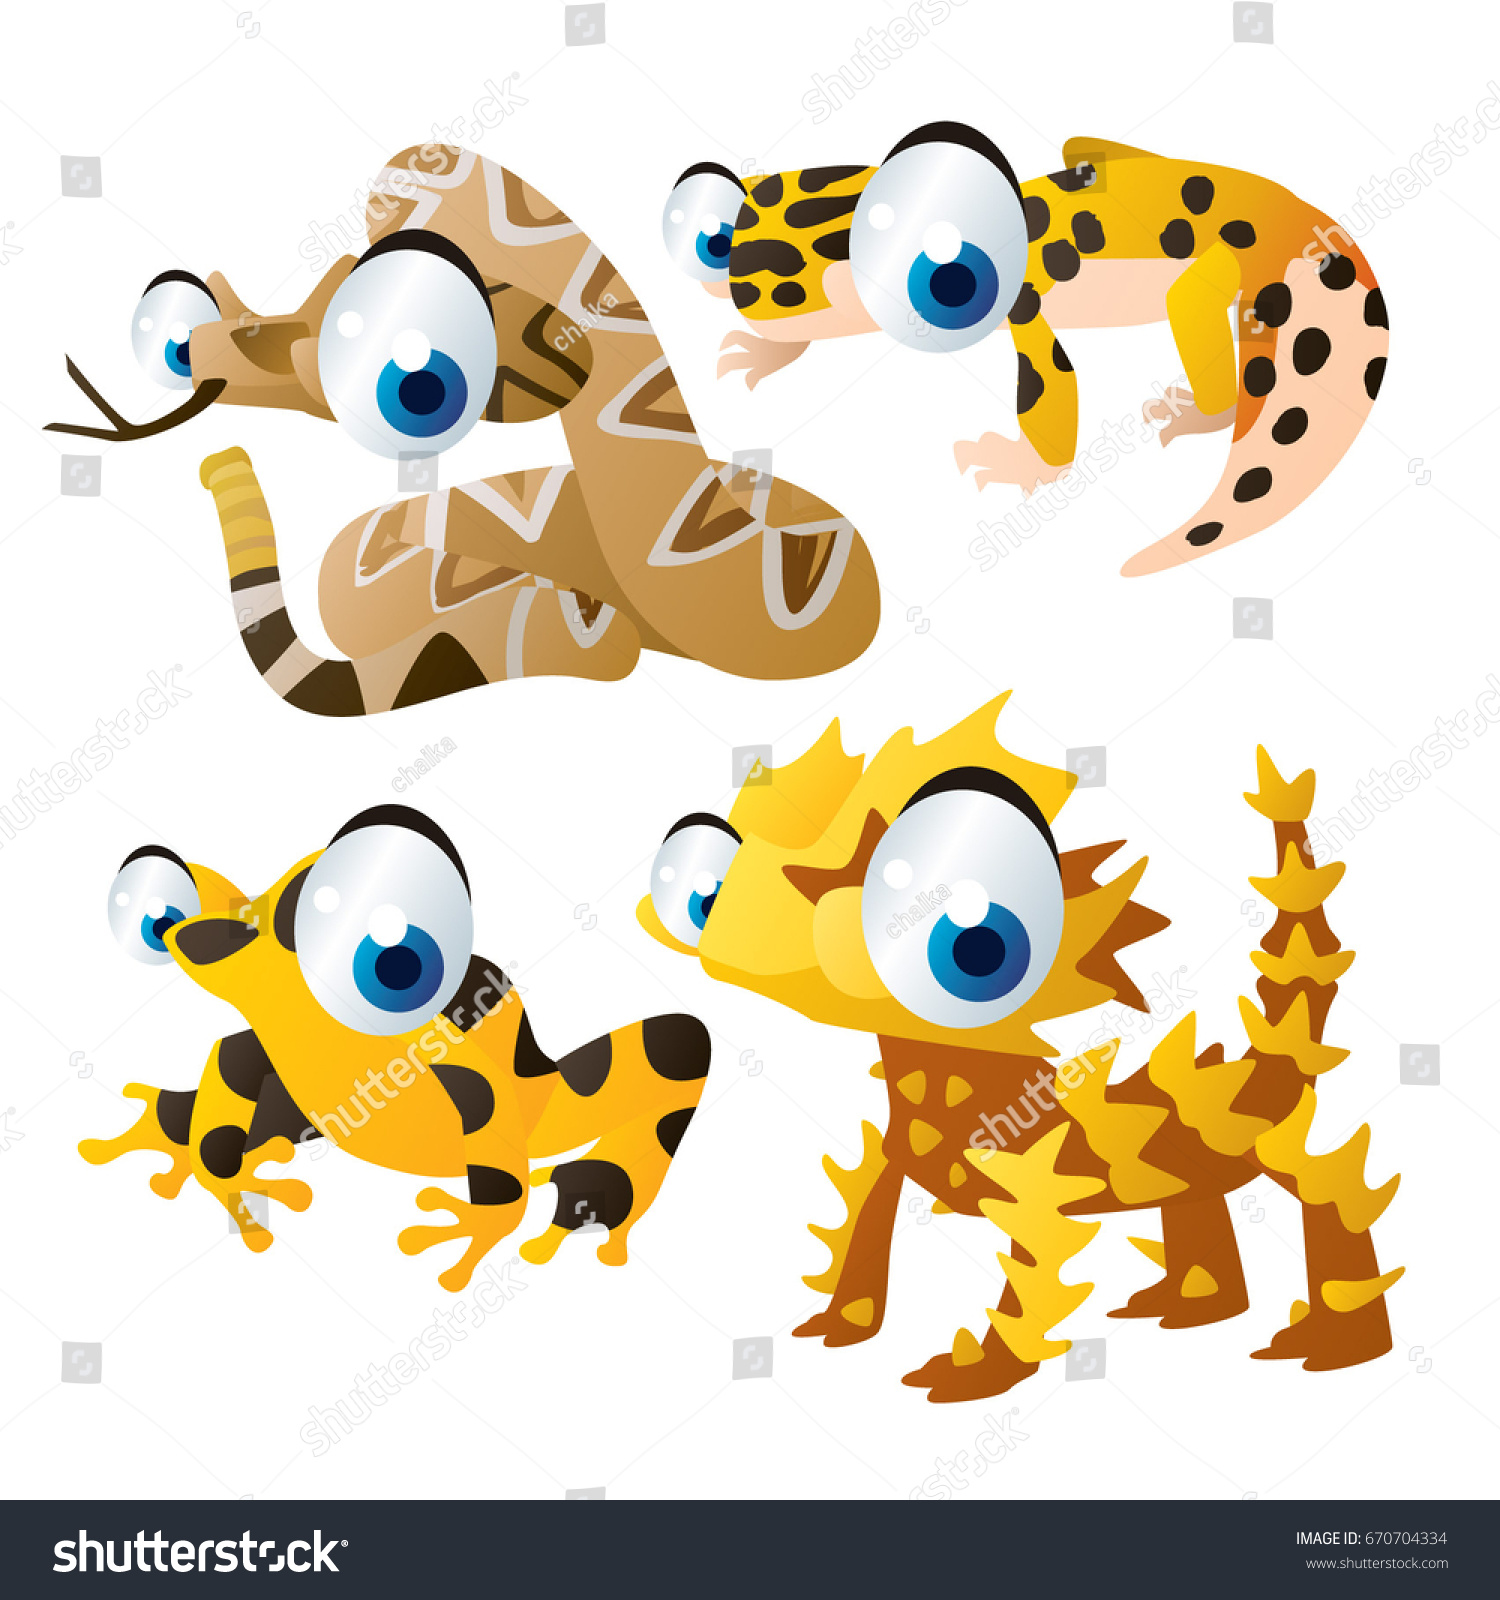 Vector Cartoon Animal Illustration Cute Funny Stock Vector ... for Clipart Leopard Cute  70ref